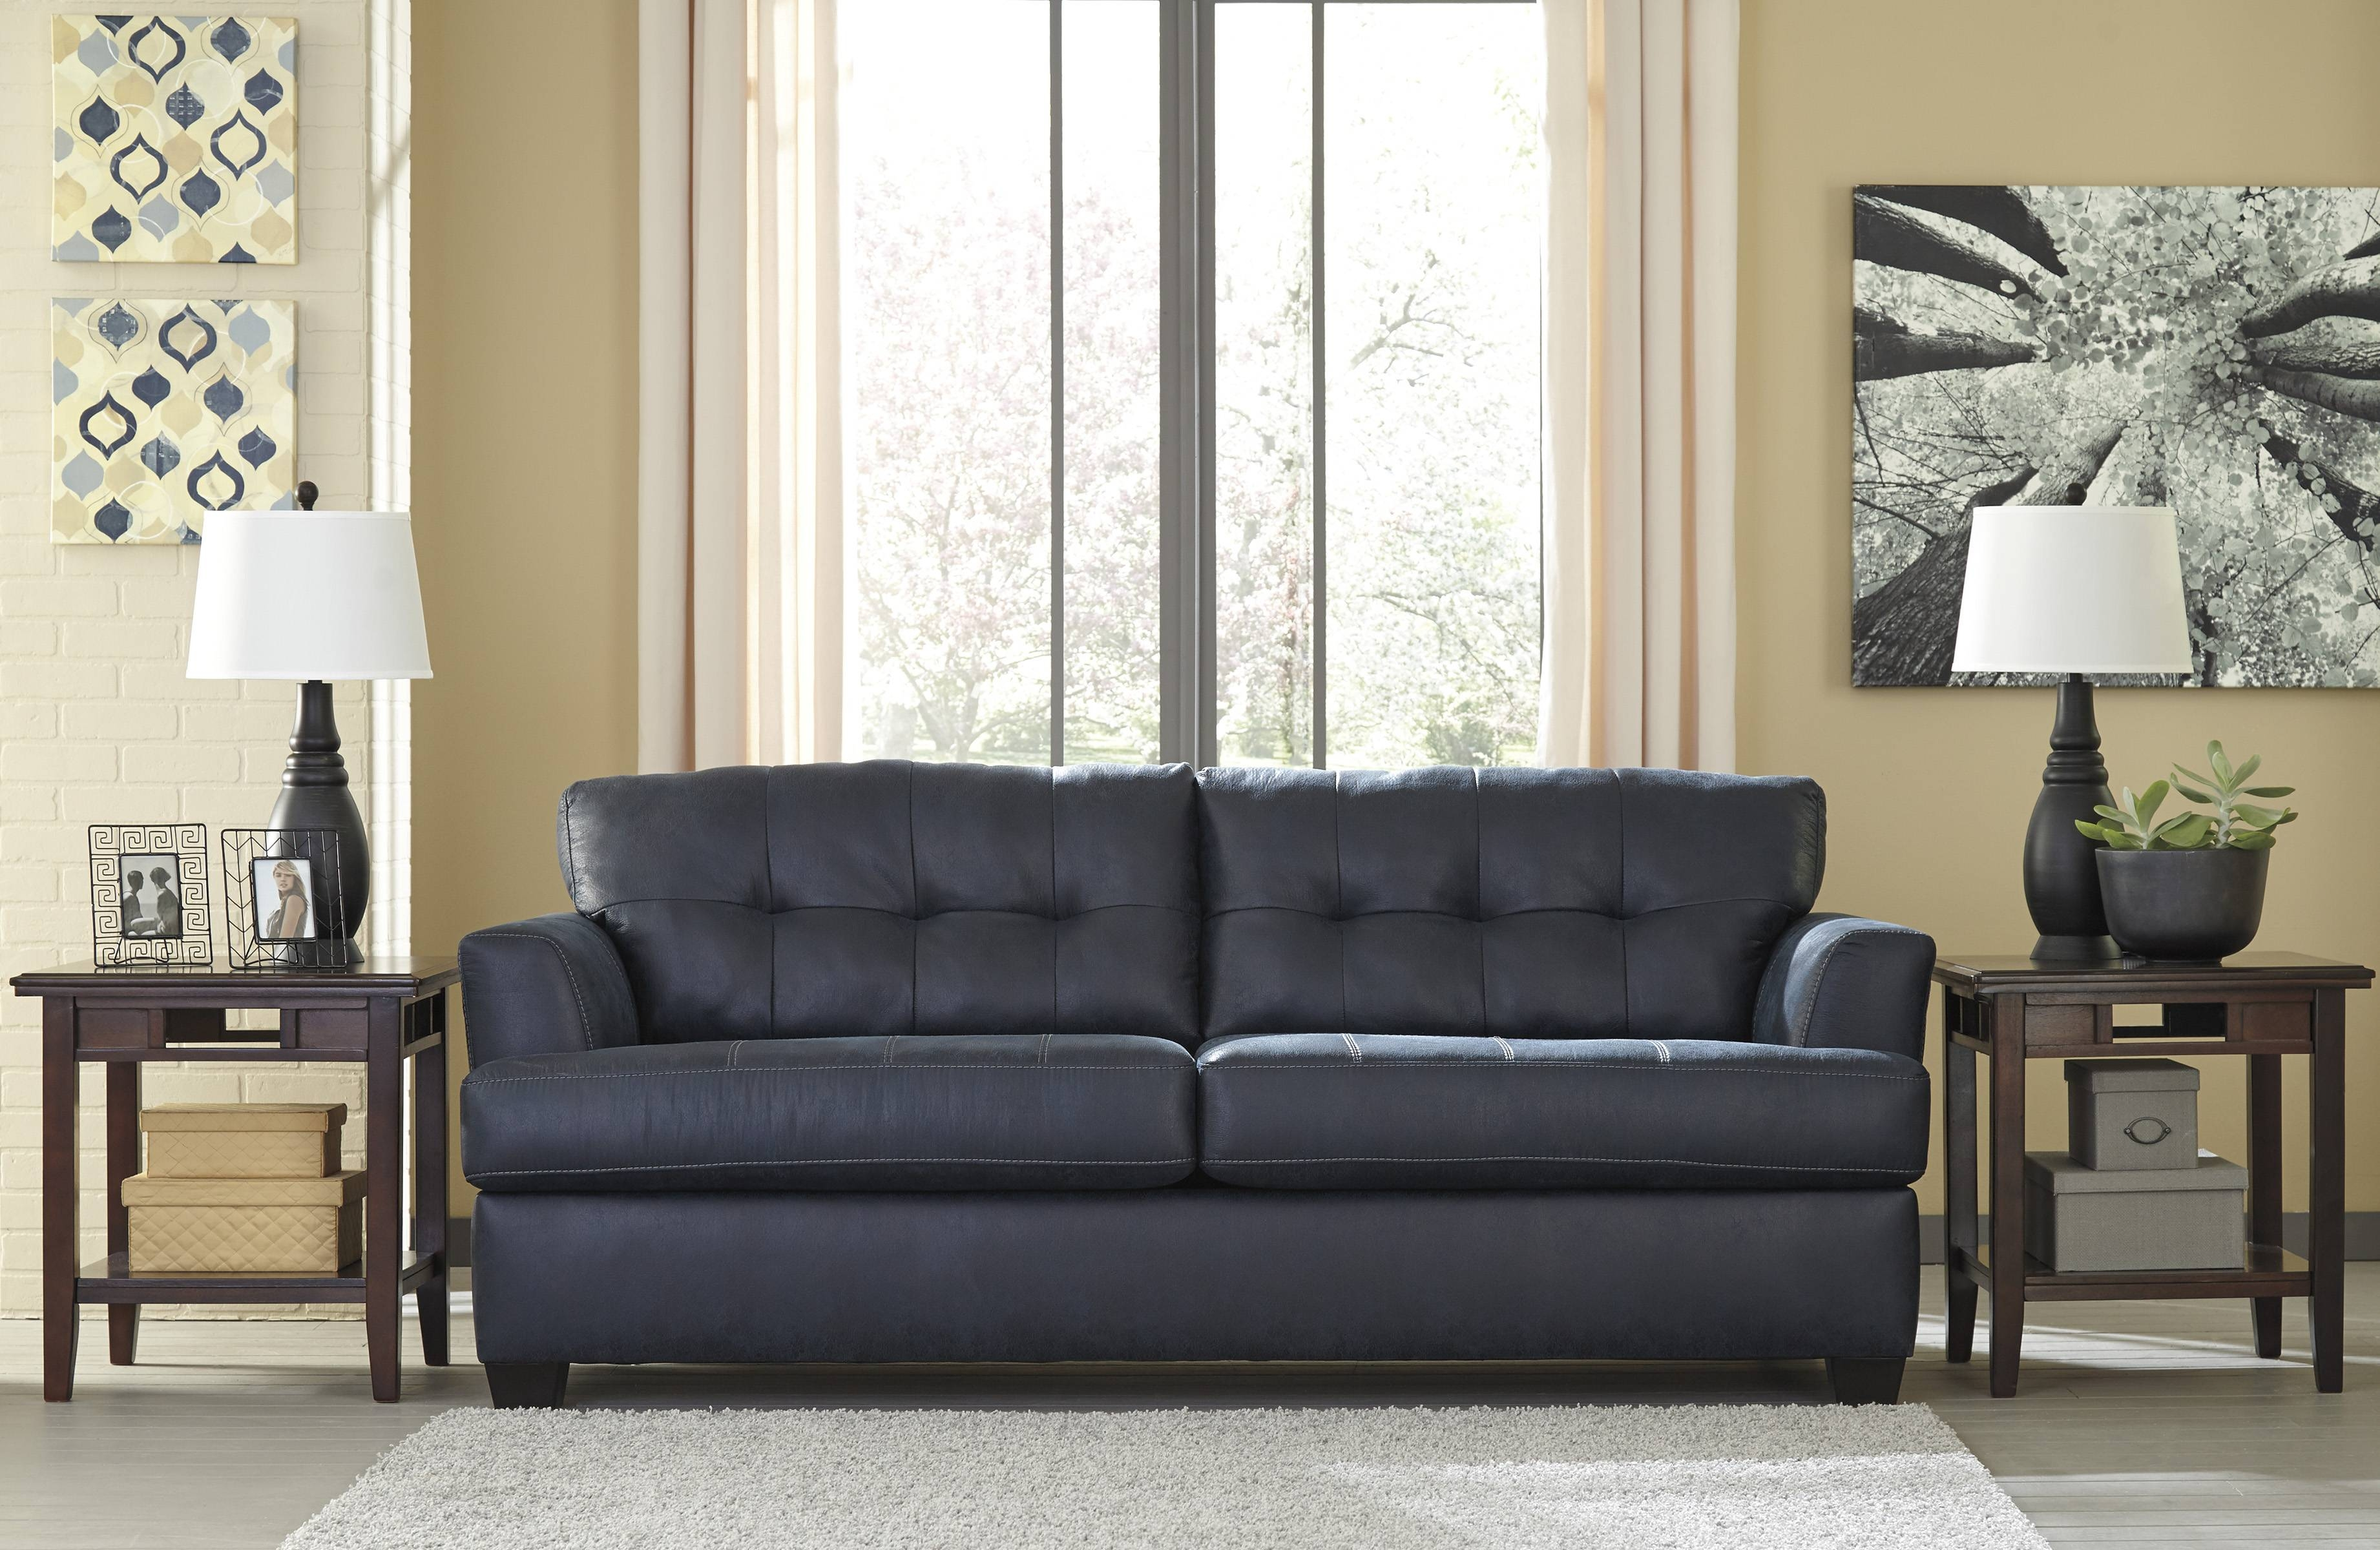 Ashley Inmon Navy Sofa And Love - Dream Rooms Furniture intended for Ashley Tufted Sofa (Image 6 of 30)